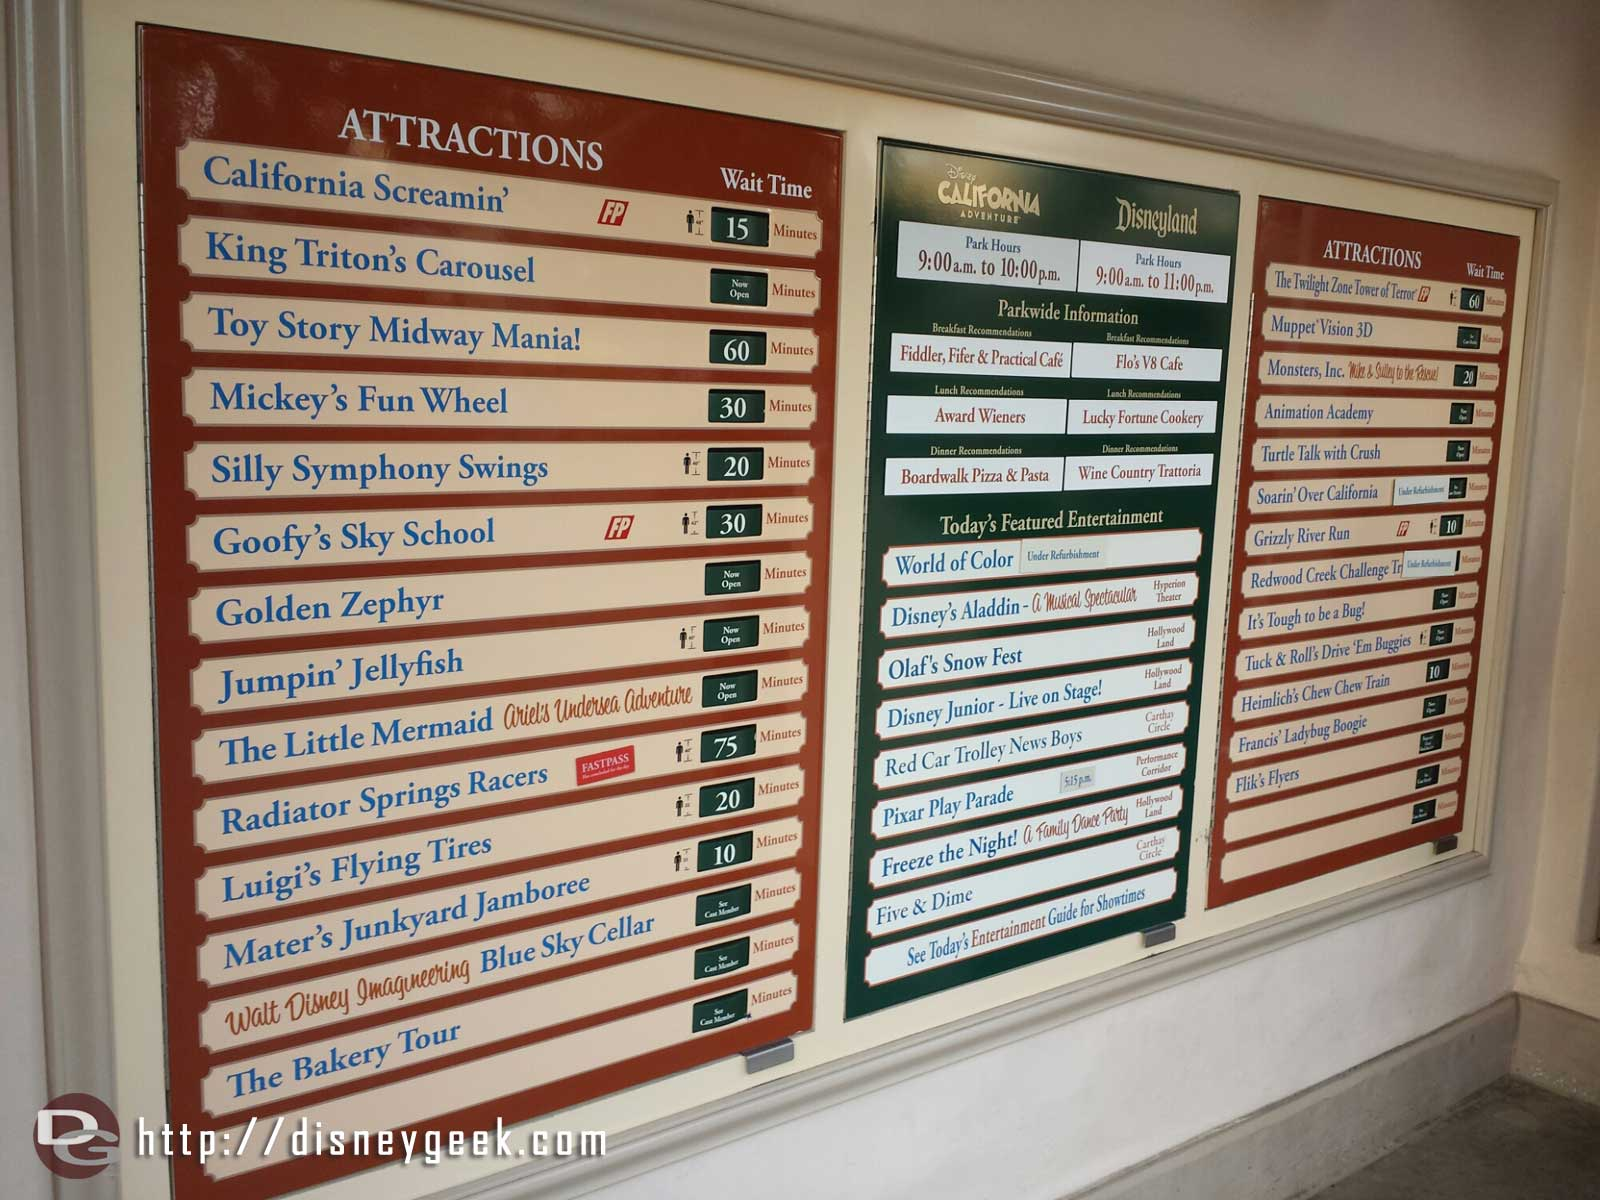 Disney California Adventure waits as of 3:24pm